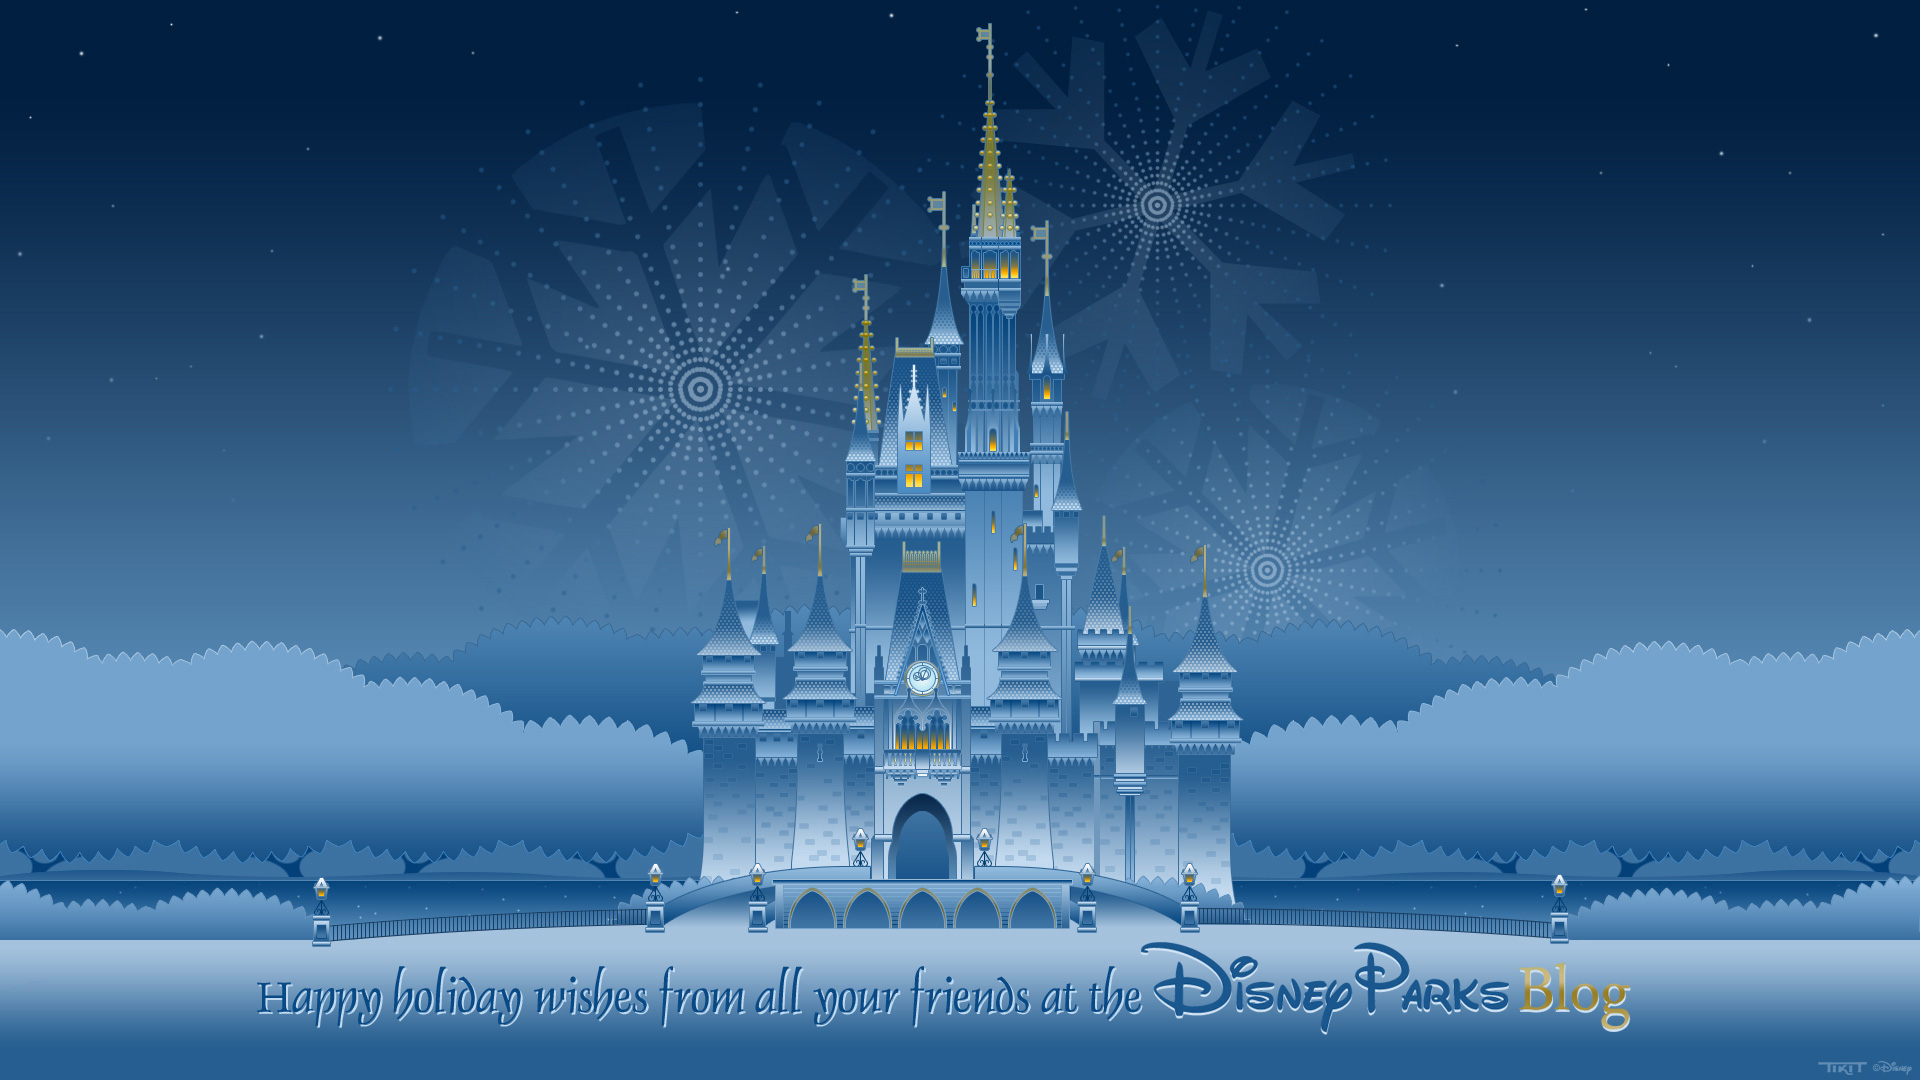 Disney world iphone wallpaper tumblr -  Disney Parks Blog Holiday Wallpaper